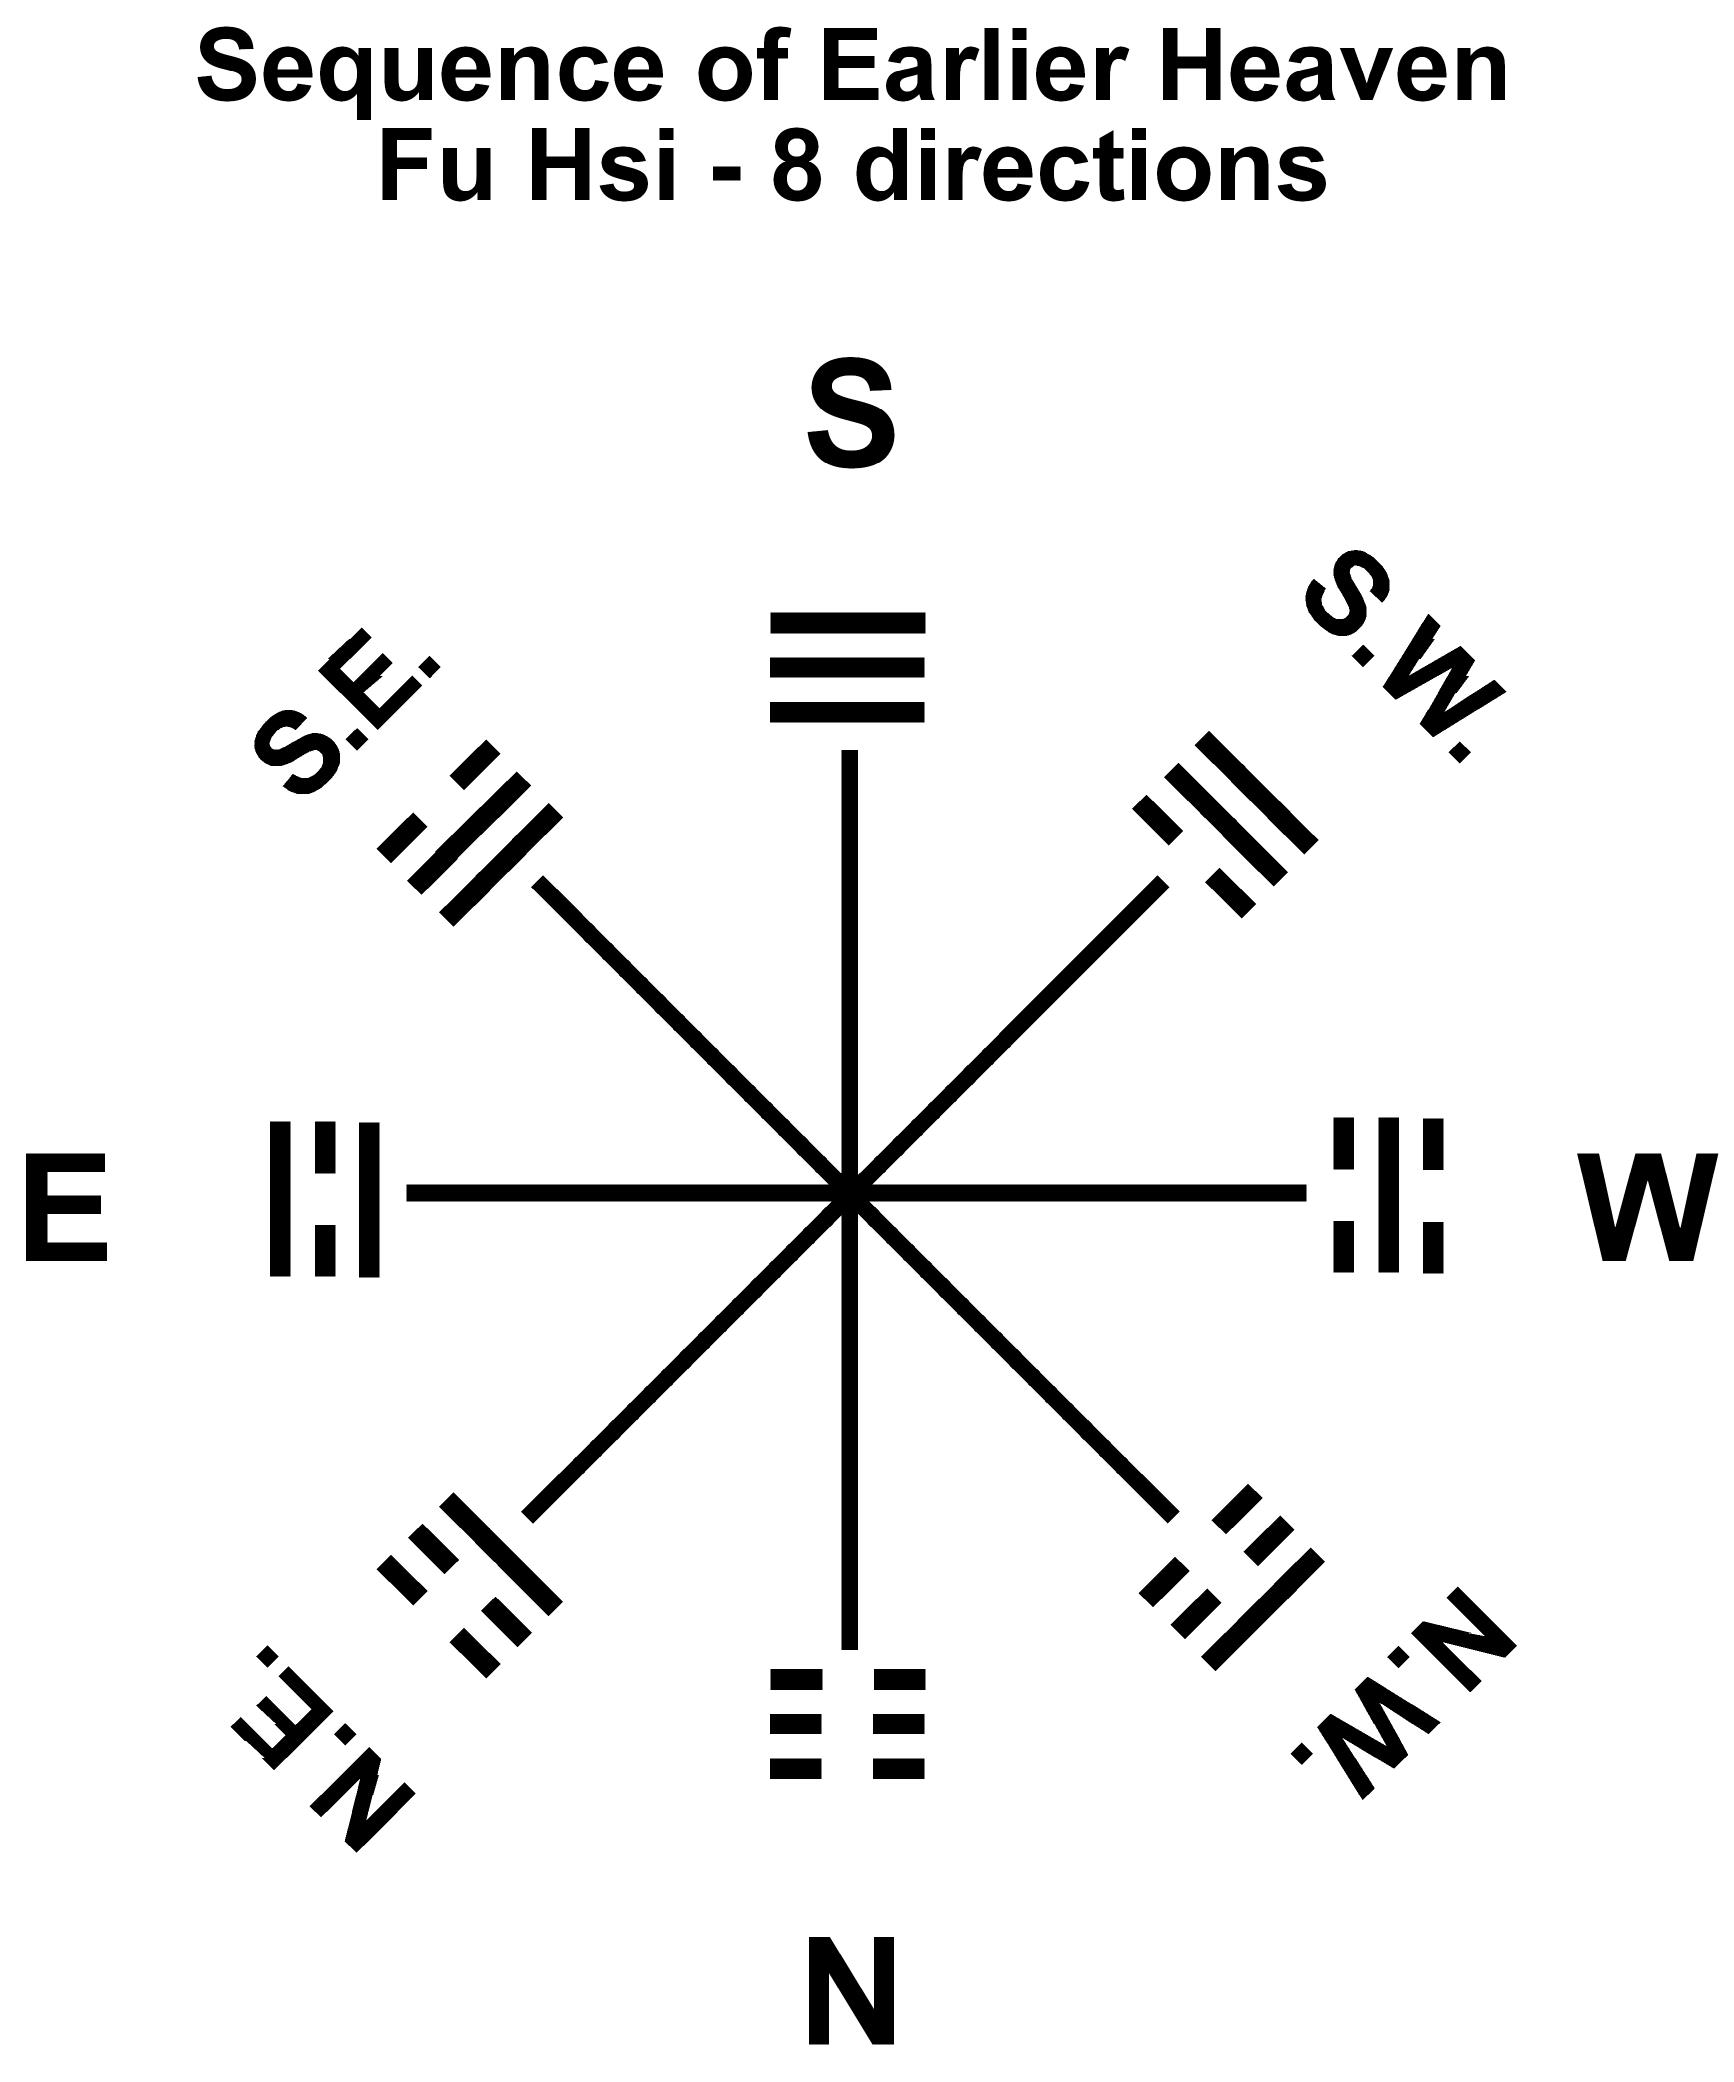 13 RA-8h Trigrams Earlier Heaven-Fu Hsi-directions